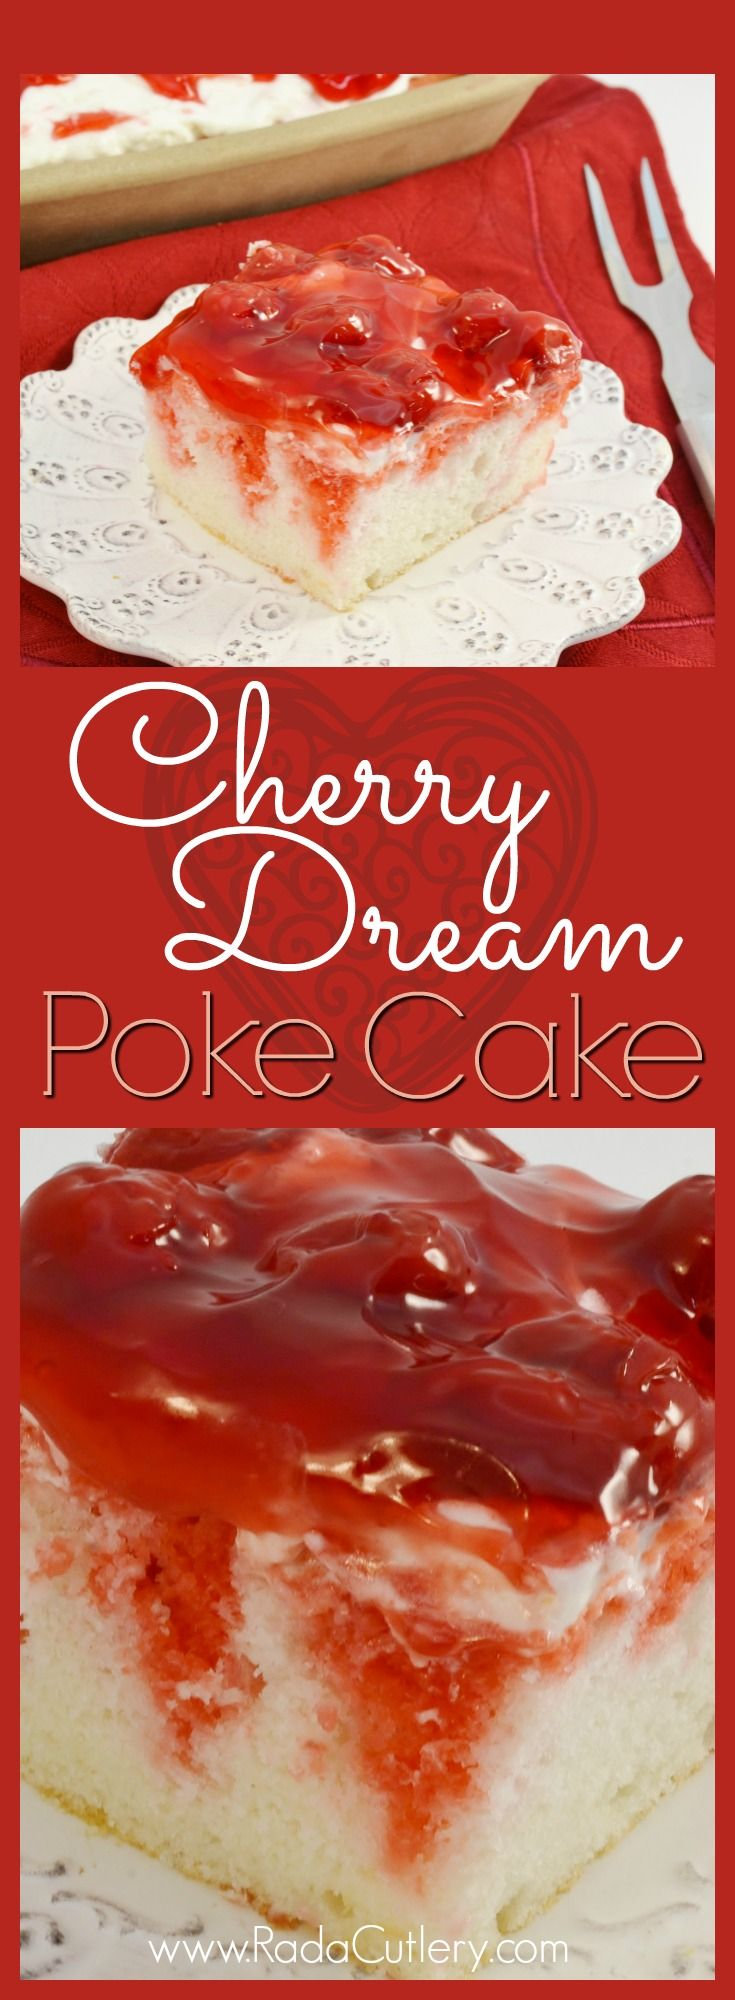 This Cherry Dream Poke Cake recipe makes for a heavenly treat, a white cake infused and topped with delicious cherry flavors. Just make sure to grab a slice while you can, because once this is served, it won't last long! #cake #cherry #pokecake #recipe #creamcheese